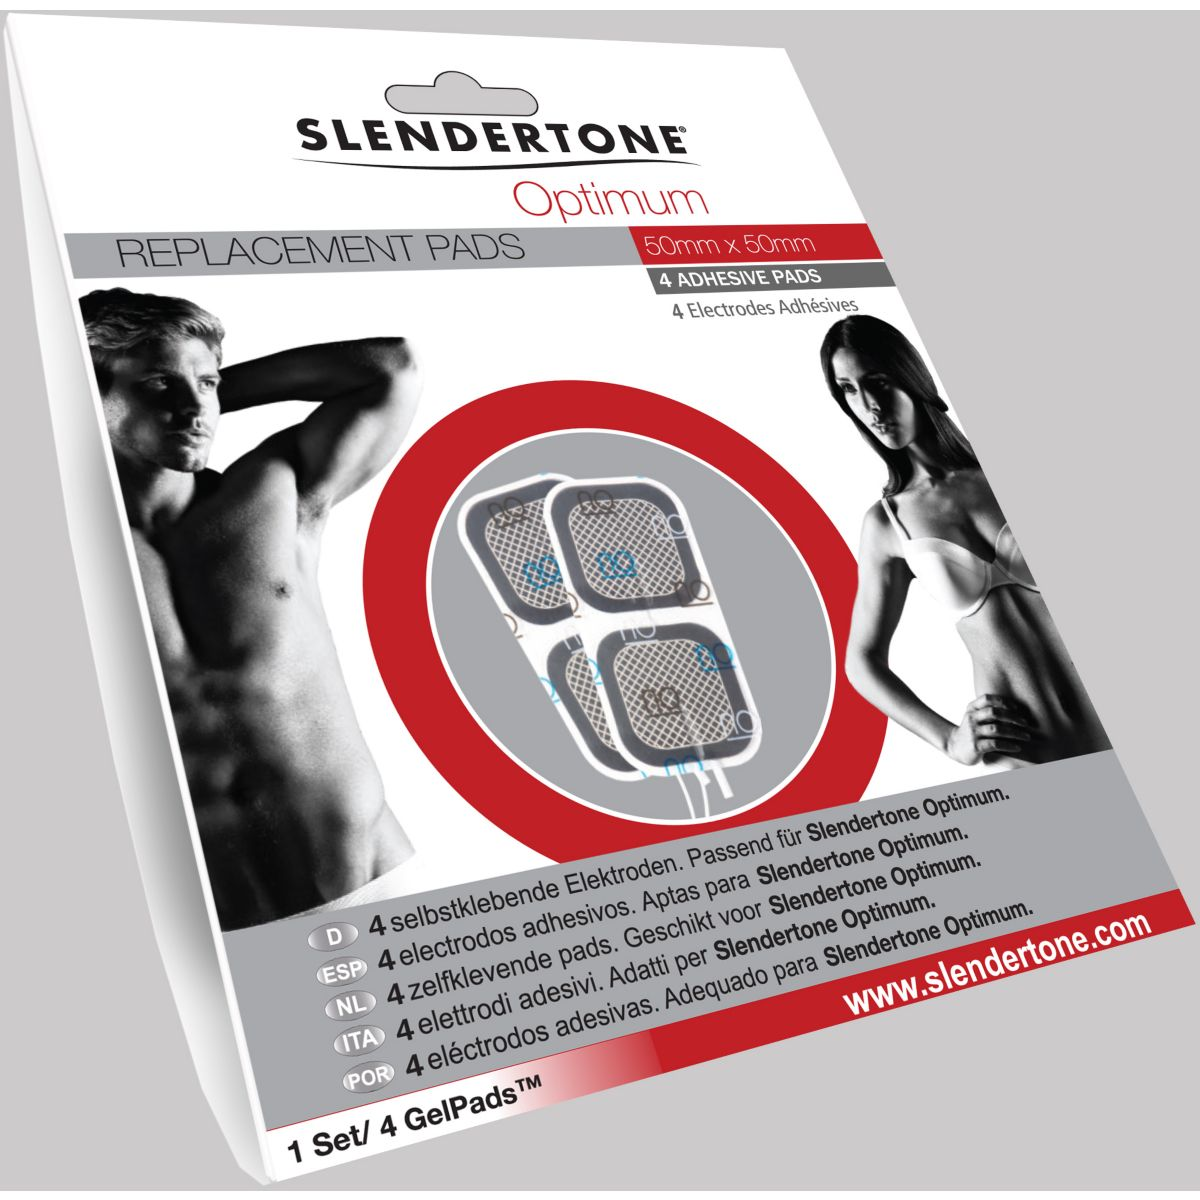 Electro-Stimulation SLENDERTONE ELECTRODES OPTIMUM 50X50 (photo)